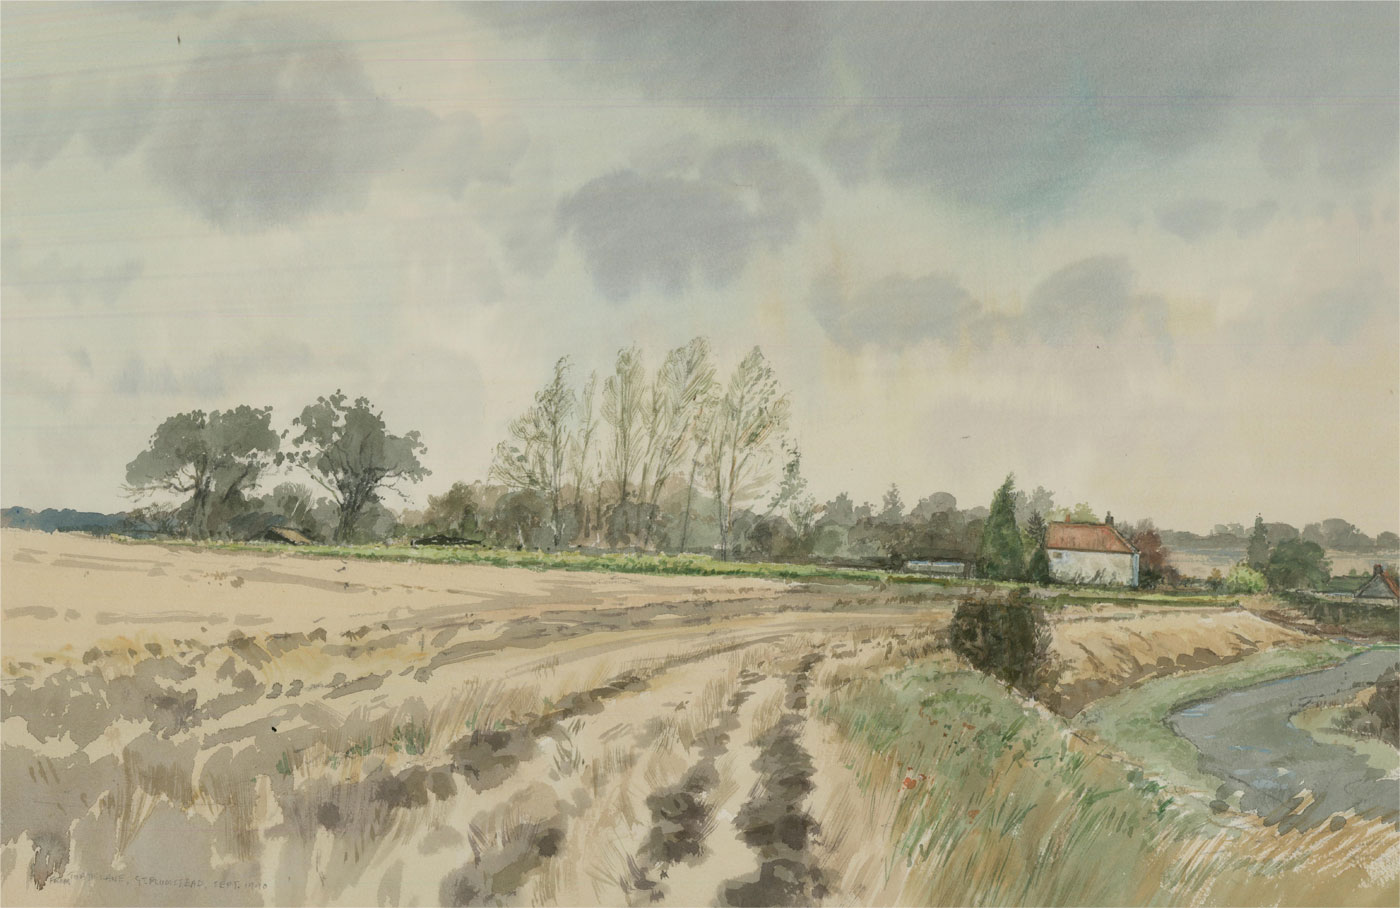 Keith Johnson (1931-2018) - 1990 Watercolour, Toad Lane, Great Plumstead